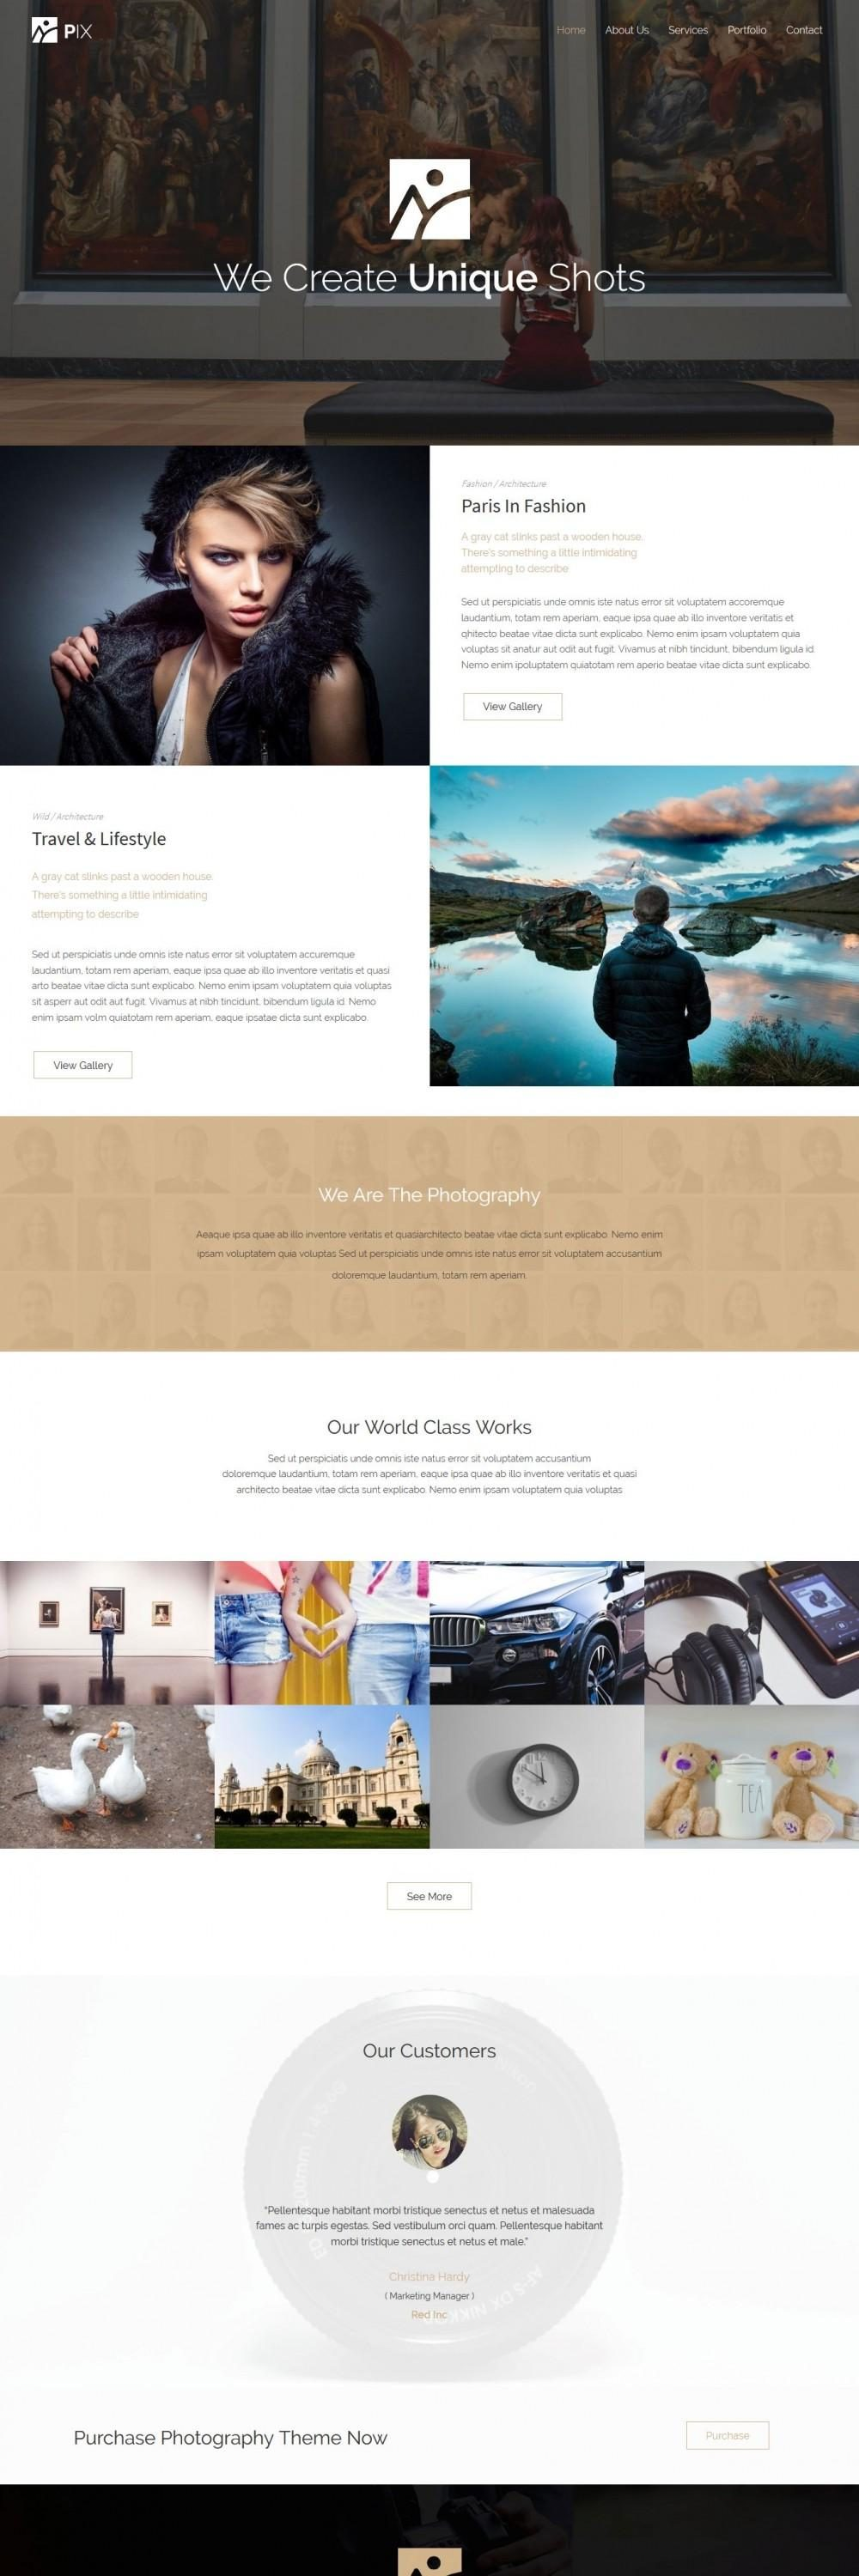 Pix – Photography Studio Drupal Theme